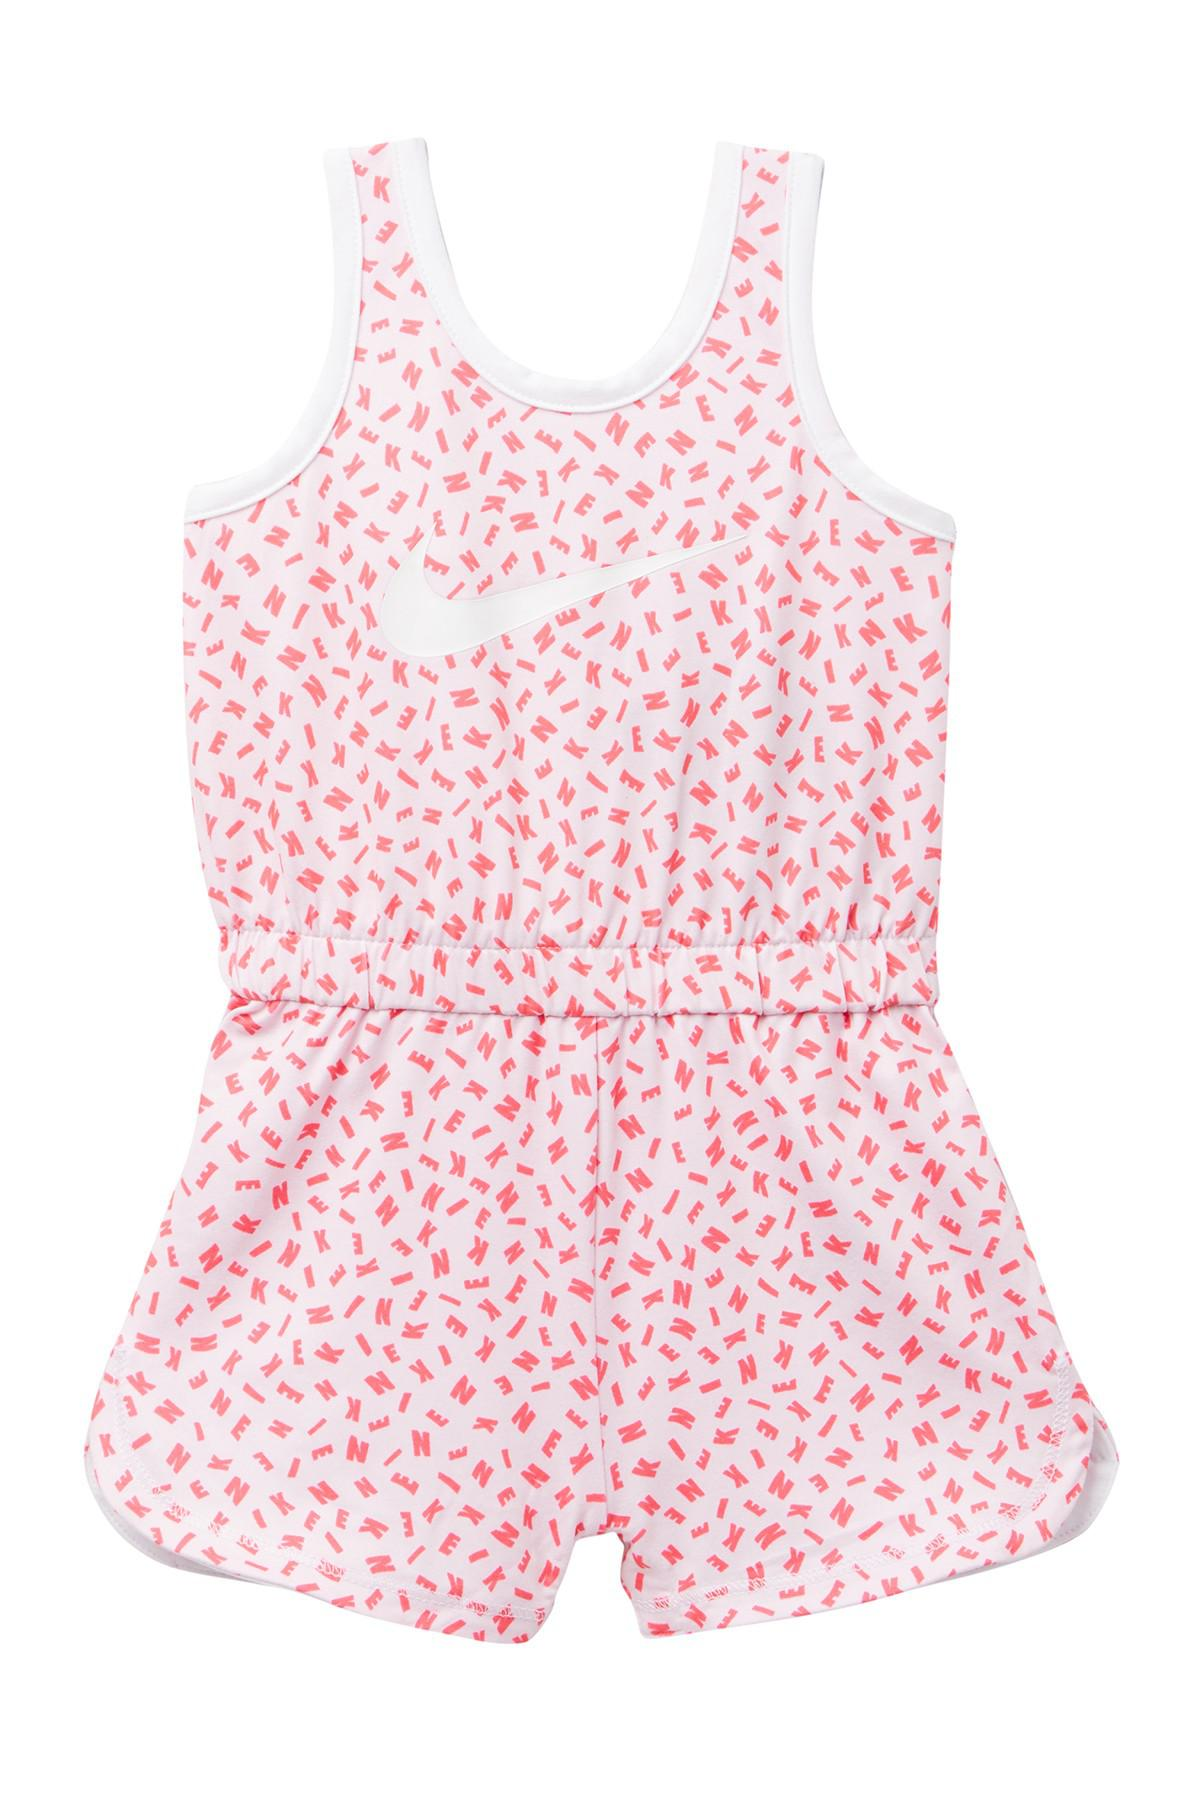 6e672f190872 Lyst - Nike Dri Fit Sport Essentials Printed Romper (baby Girls) in Pink